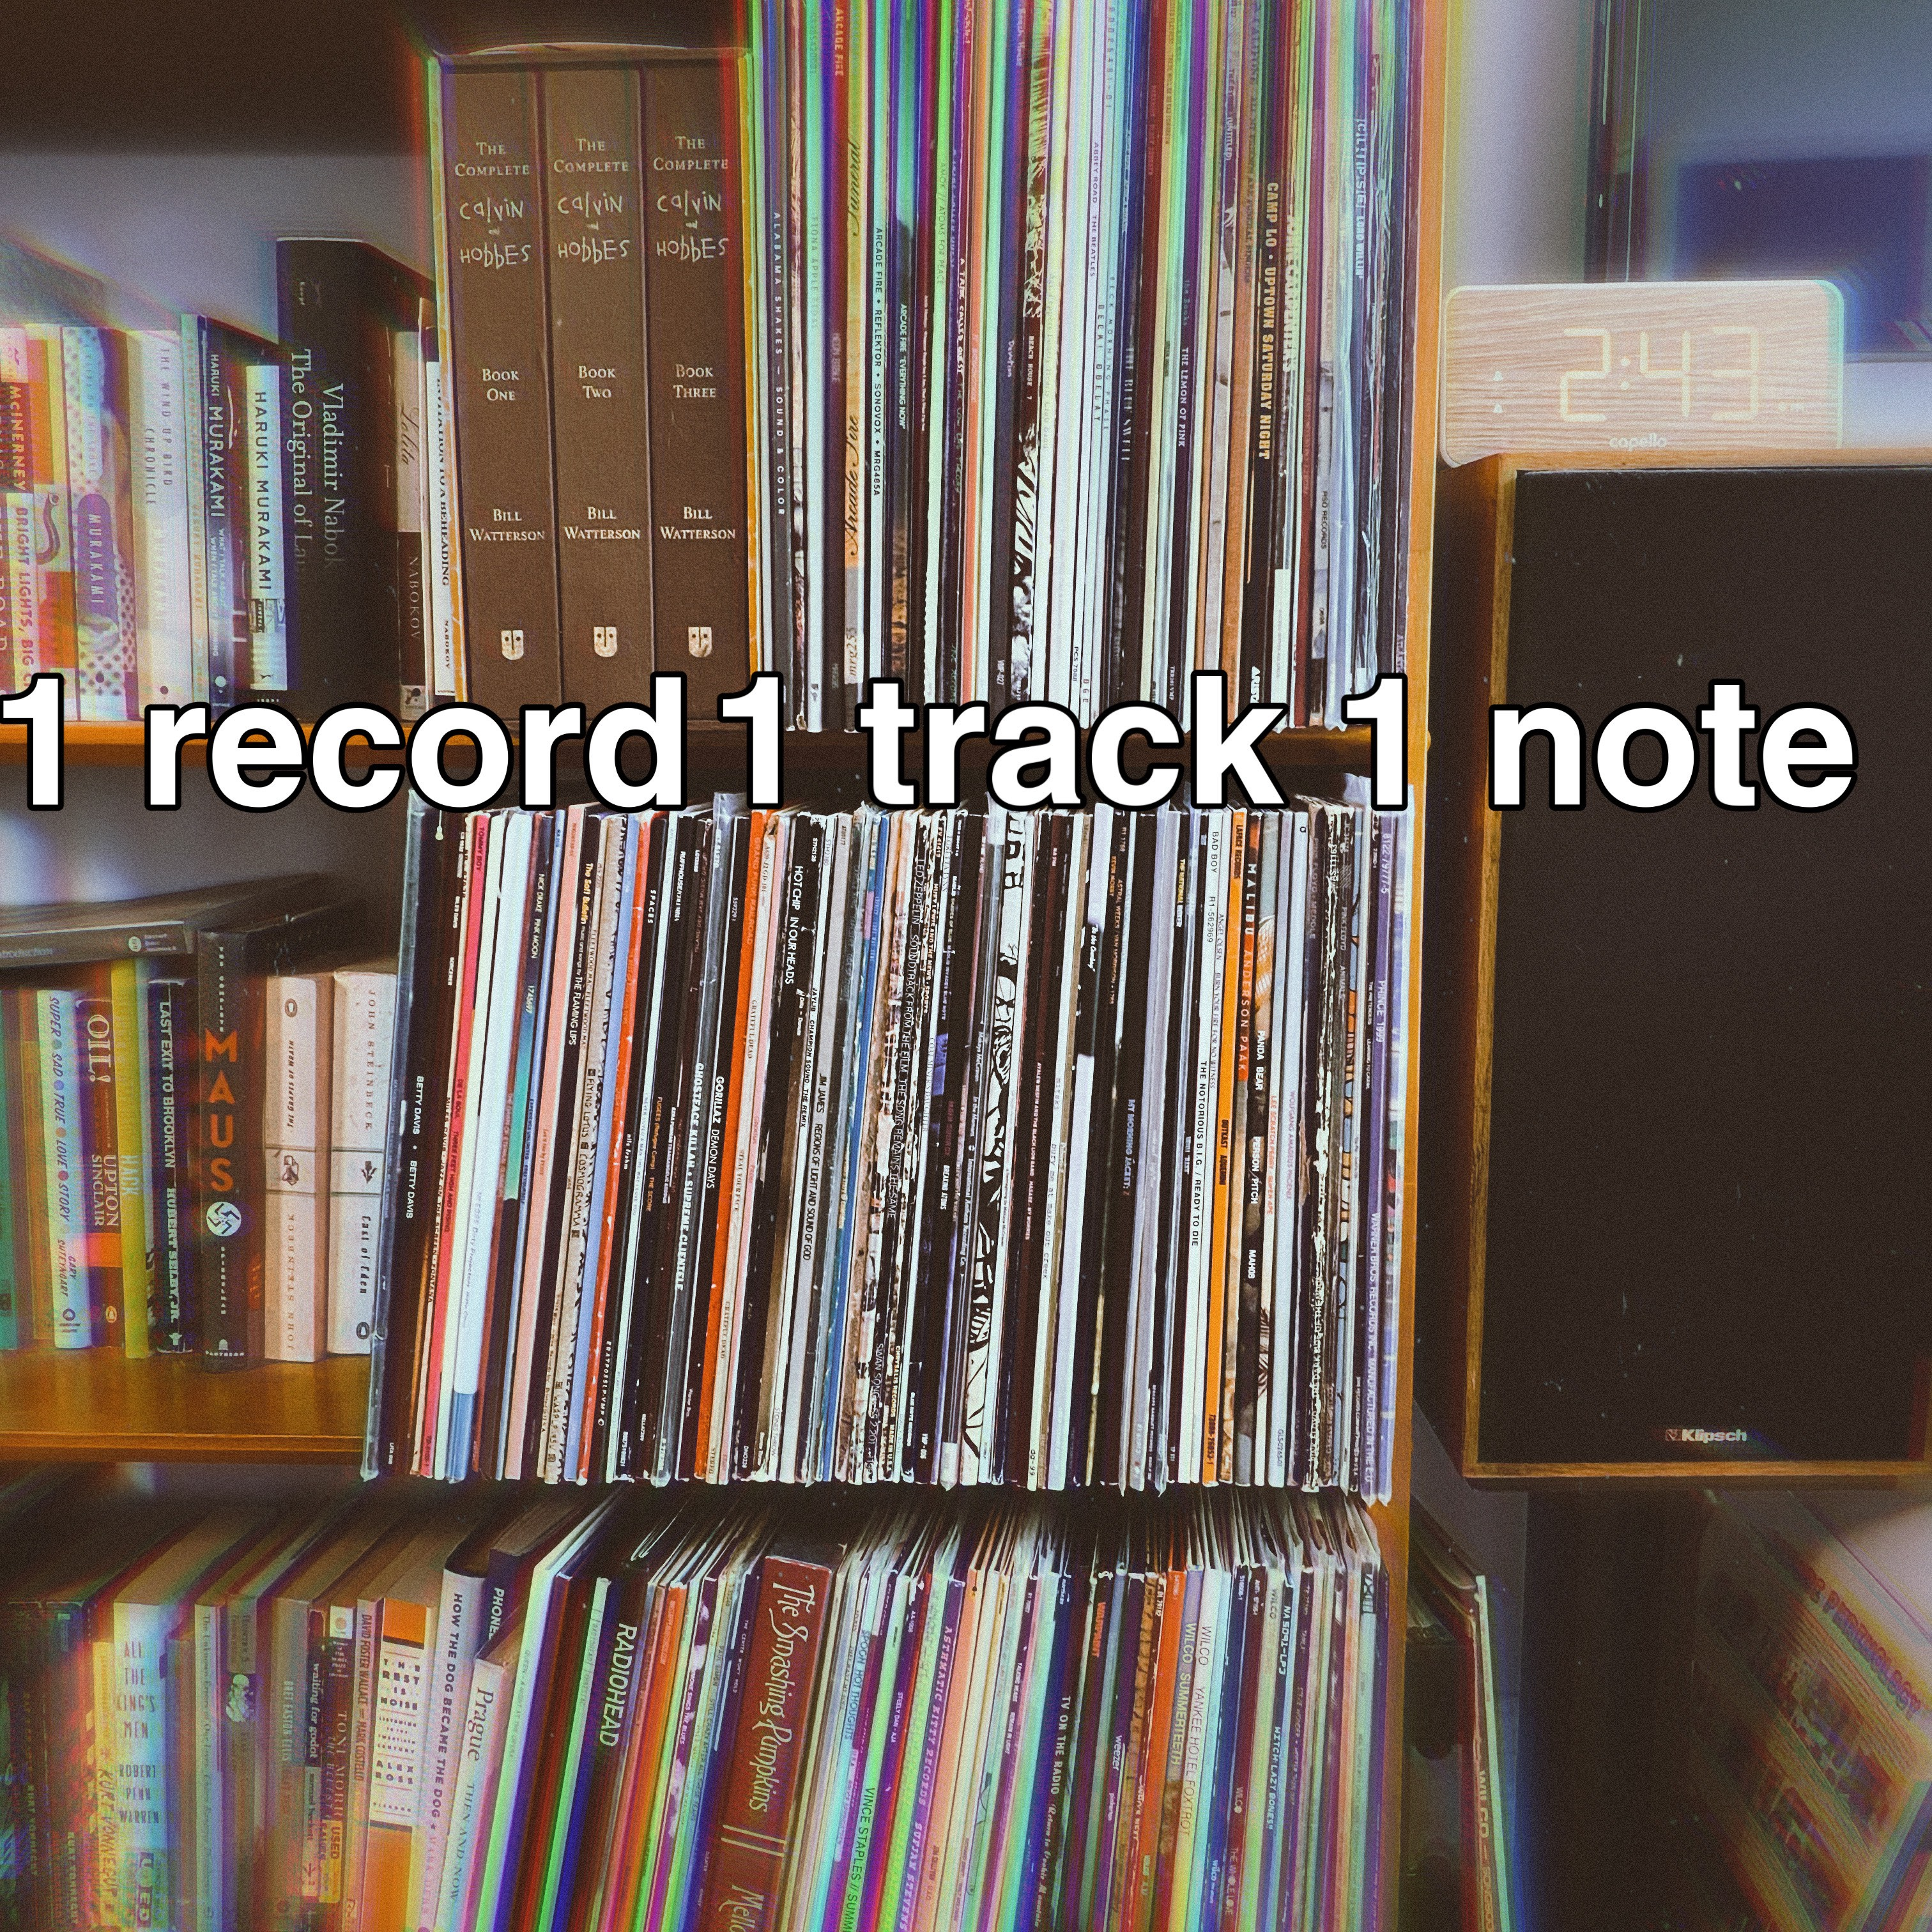 Notable Tracks: The Archives